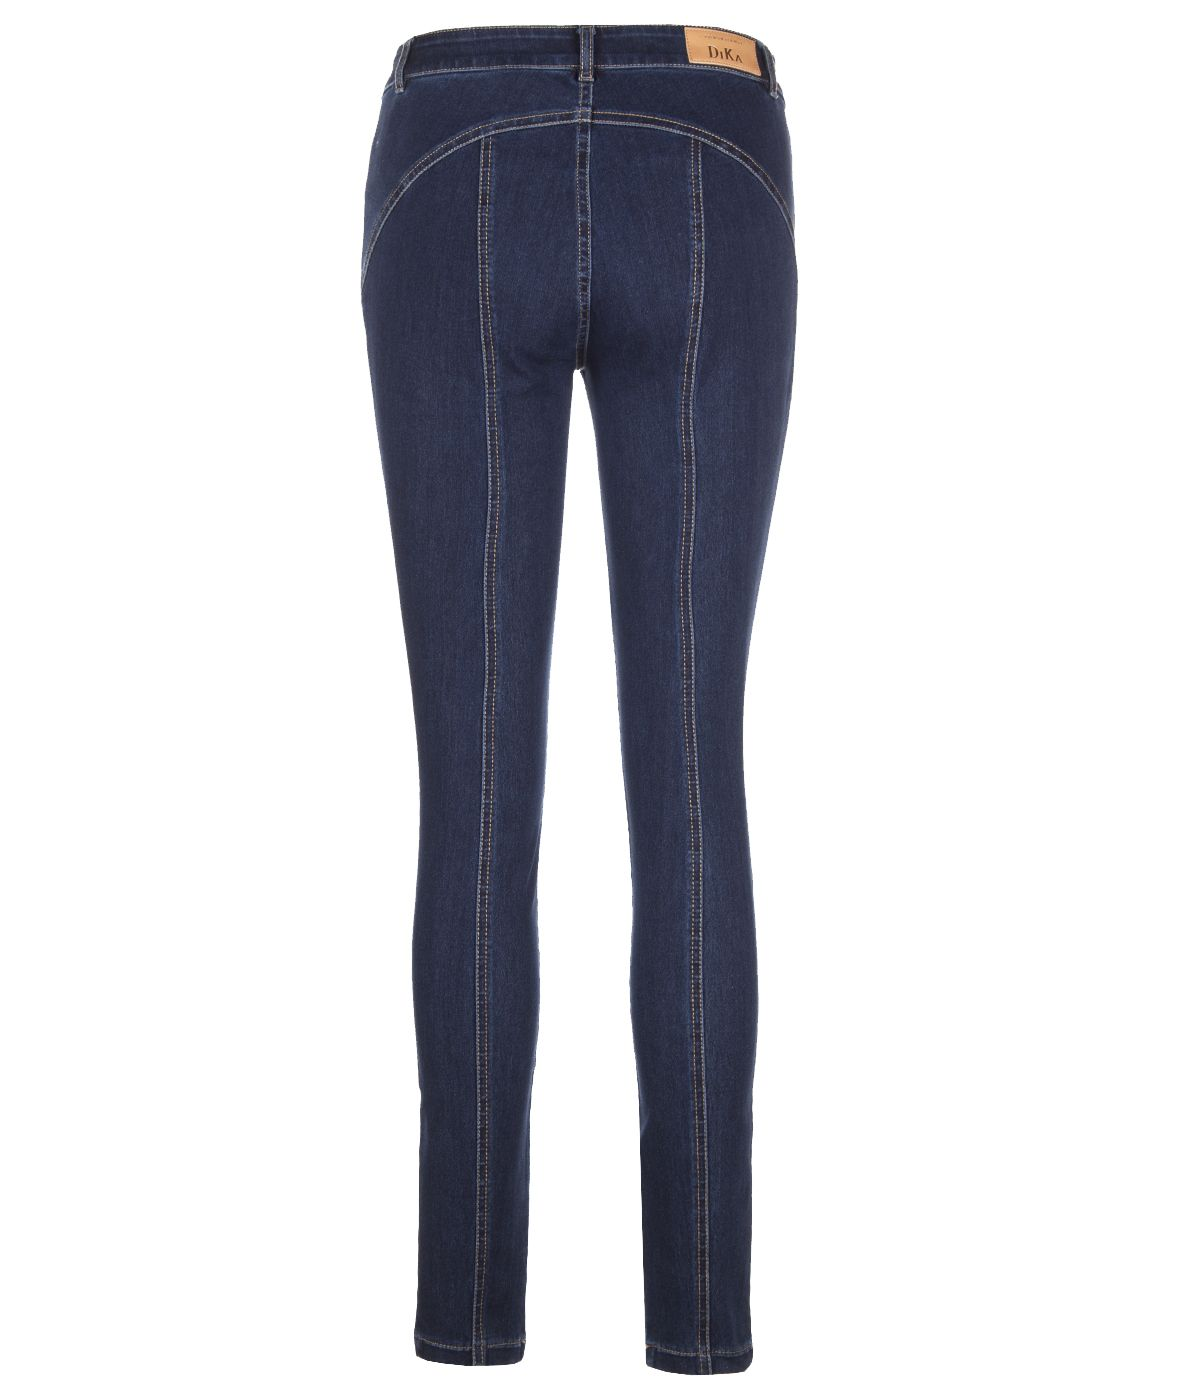 SLIM FIT JEANS WITH 2 ZIPPERS 1